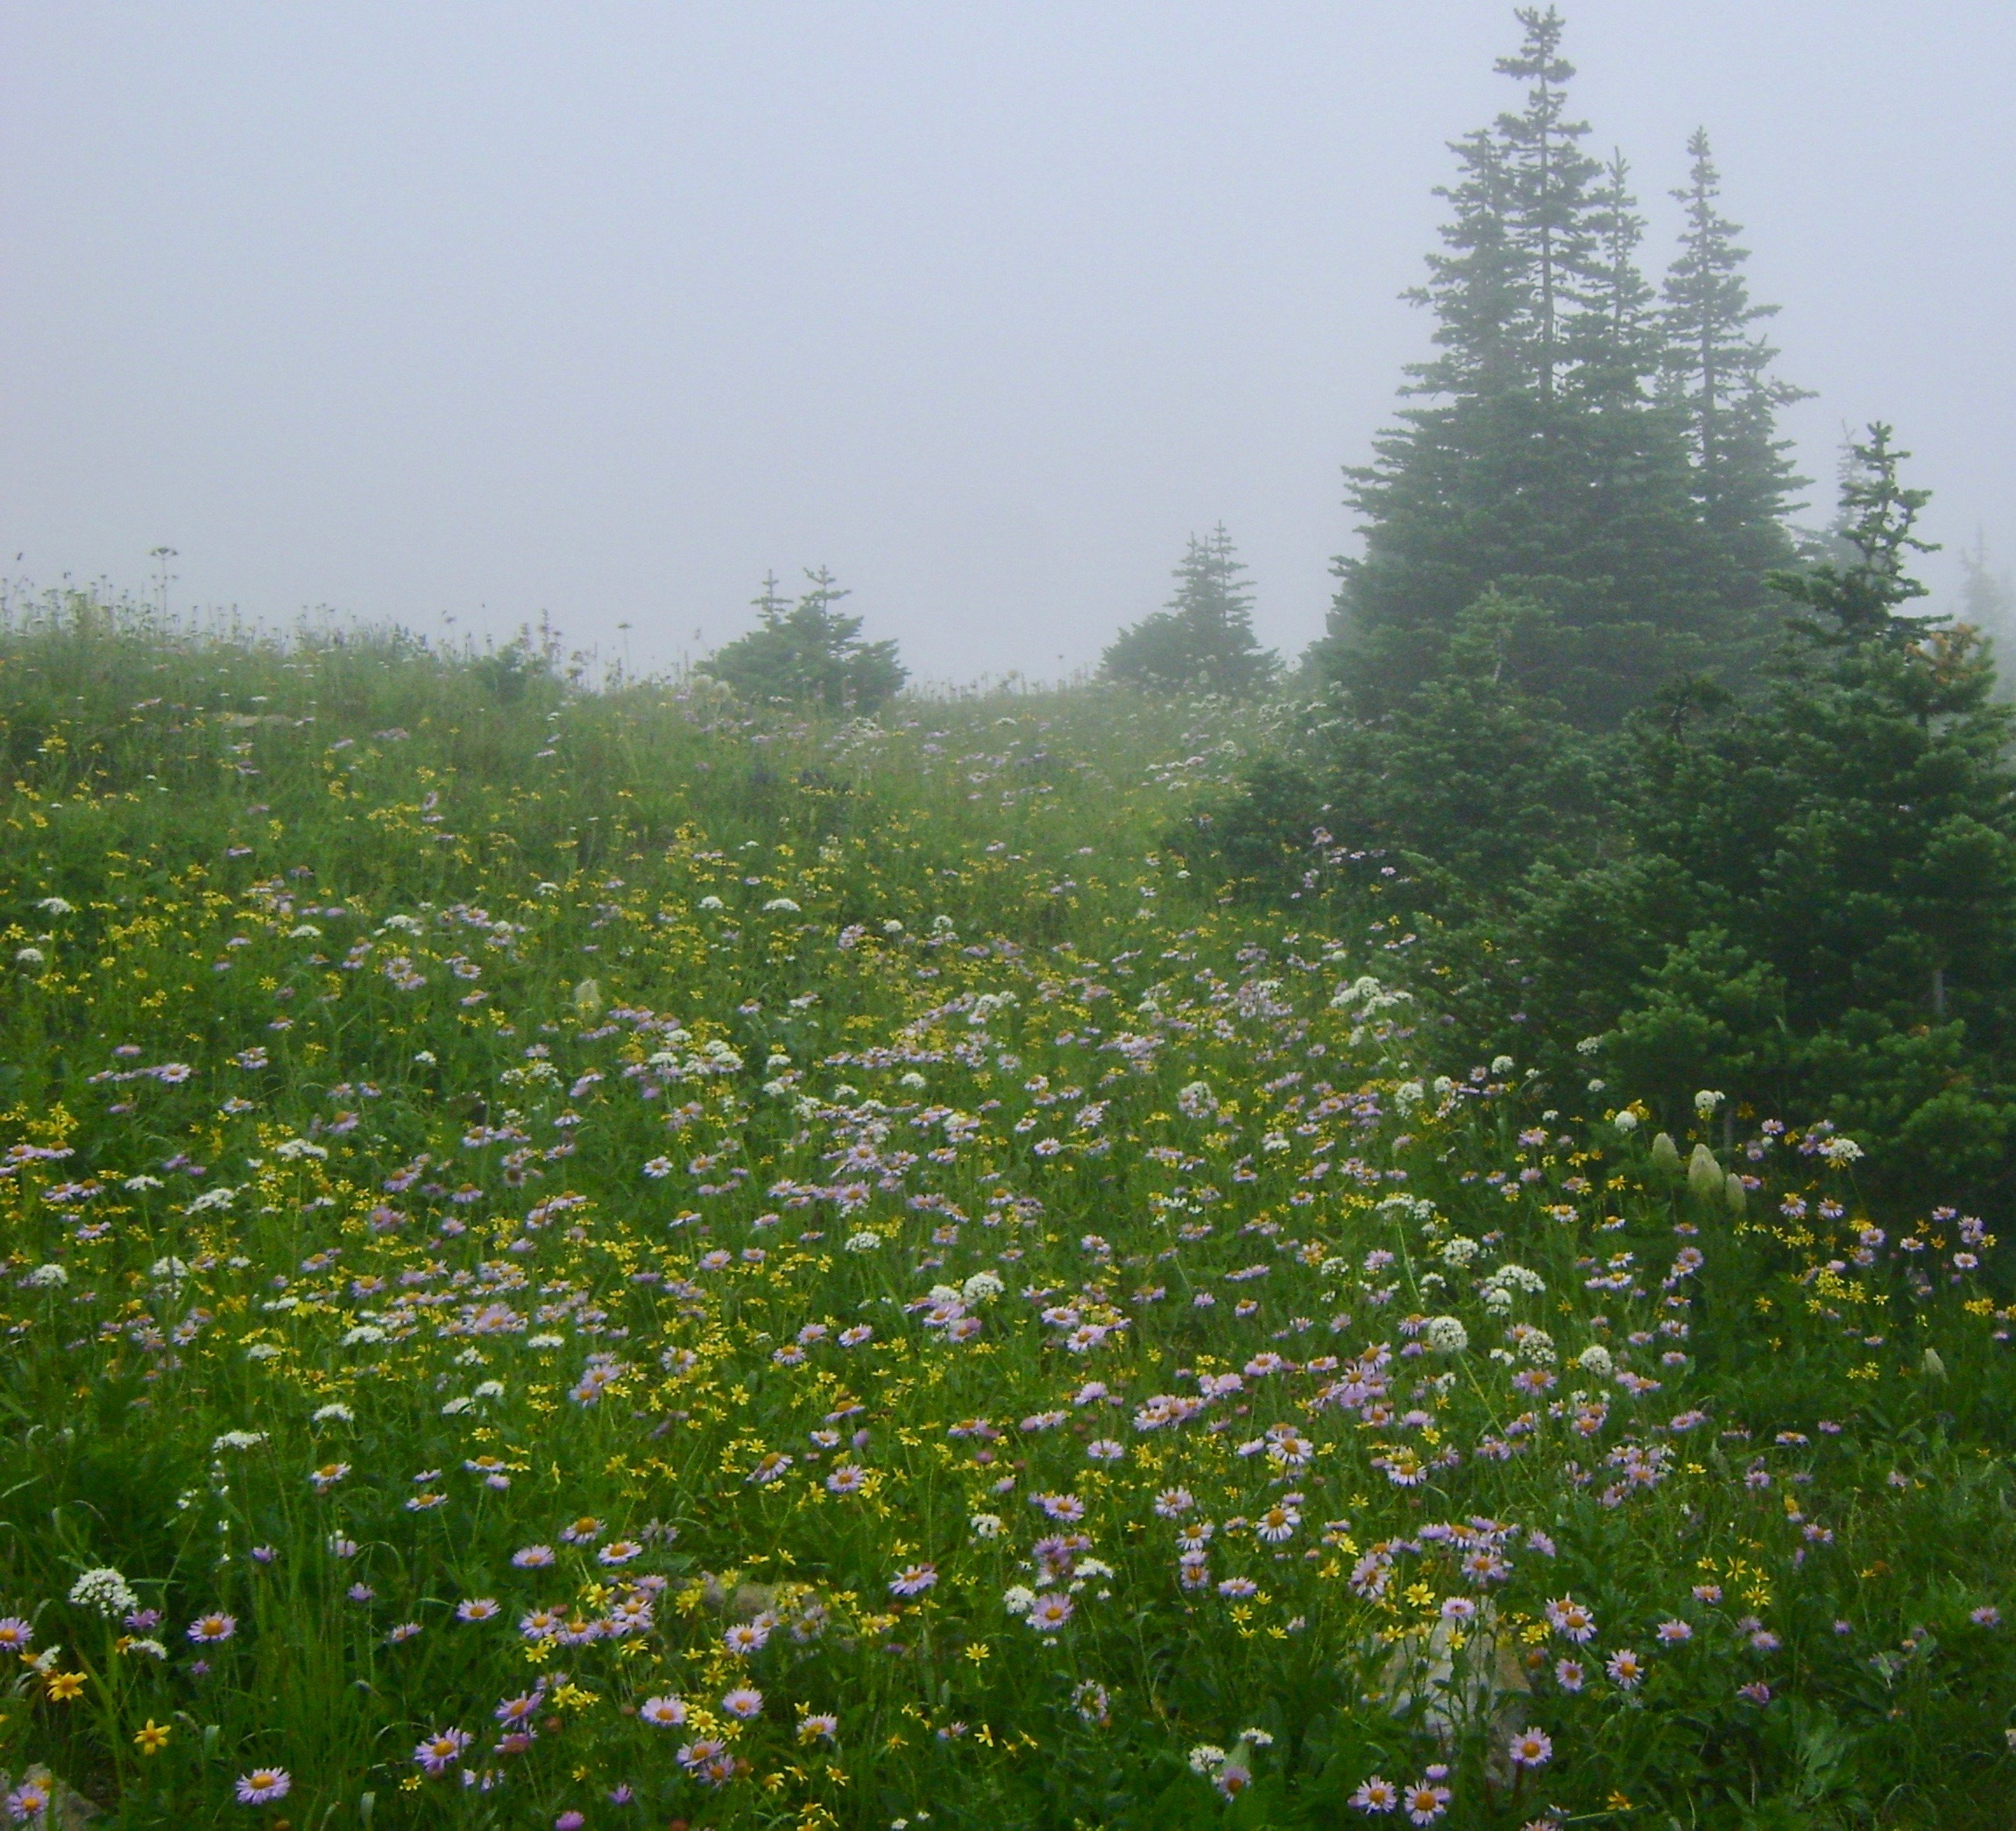 Misty day at the top of Highline Loop